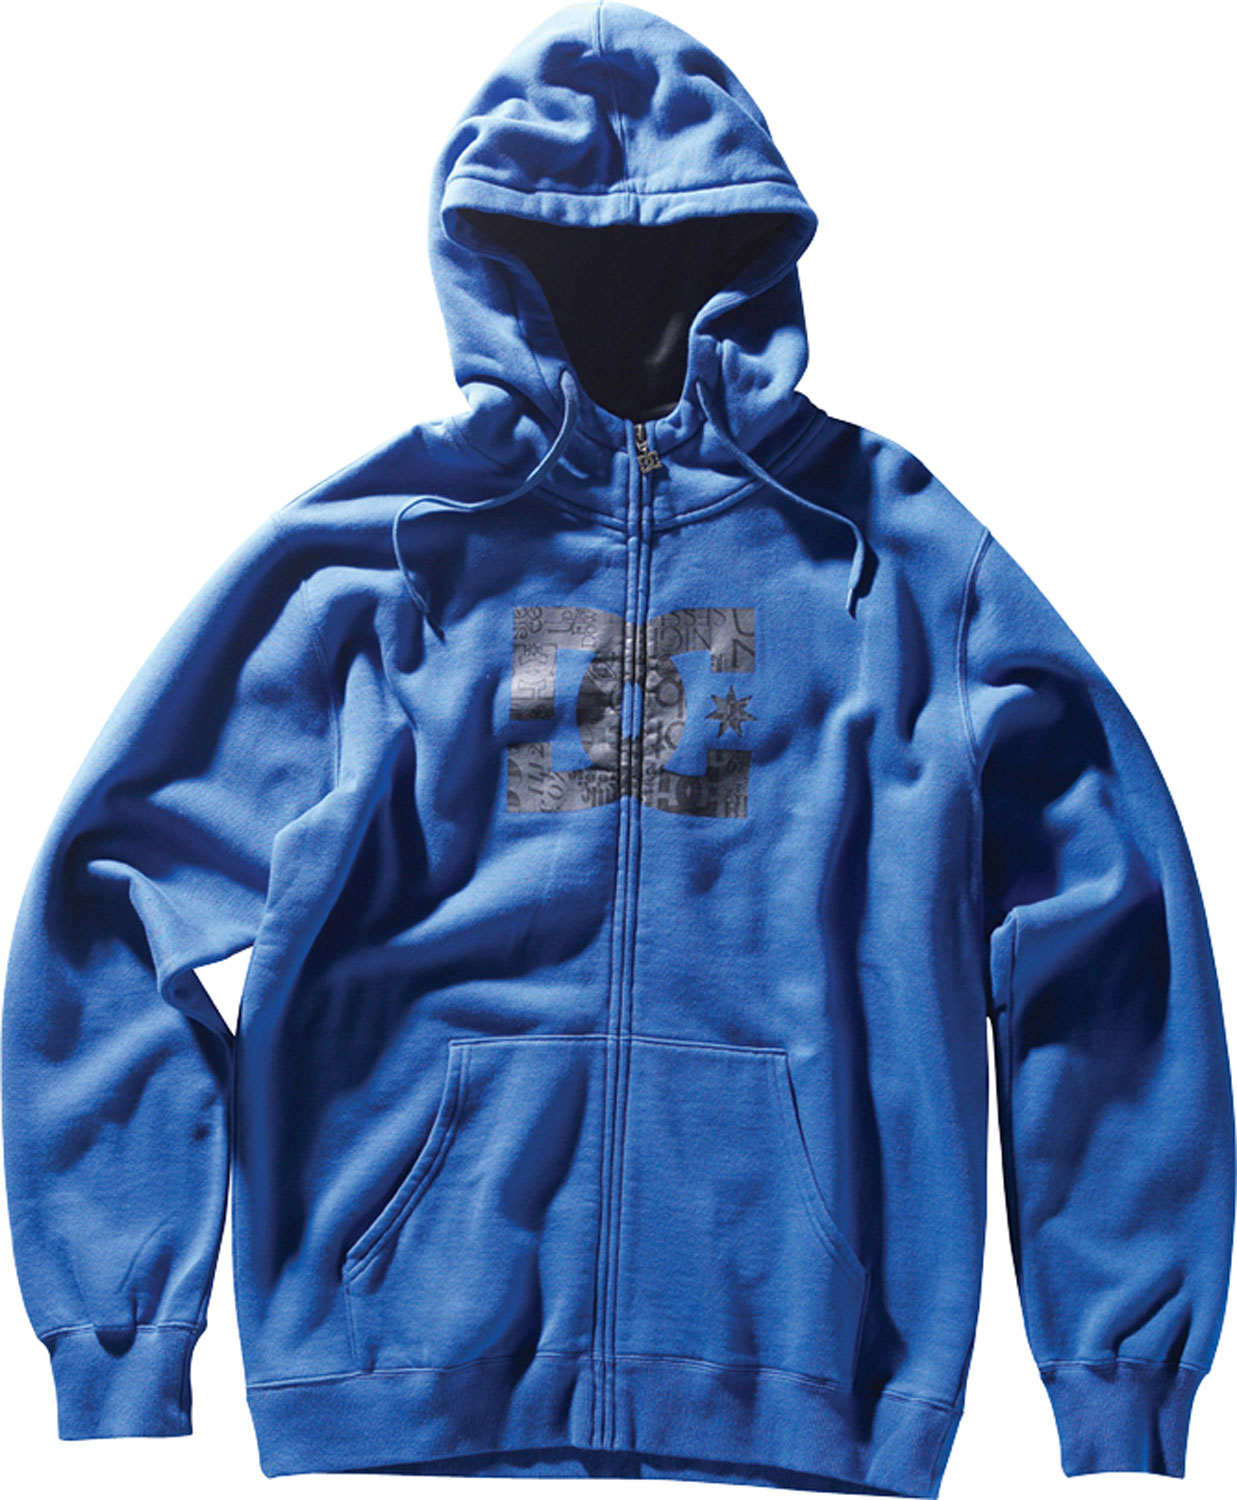 Skateboard Wear this hoodie and feel comfortable all day long. Comfort guaranteed, the DC MLF Star ZHM Full Zip Hoodie is perfect for a chilly day. Made with cotton and polyester, this ultra soft fleece hoodie can be worn over your favorite T-shirt. With its zip up feature, it's easy to wear providing true comfort and warmth. Add the DC MLF Star ZHM Full Zip Hoodie to your wardrobe collection.Key Features of the DC MLF Star ZHM Full Zip Hoodie: 80% cotton/20% polyester 330gm full zip fleece hoodie - $29.95